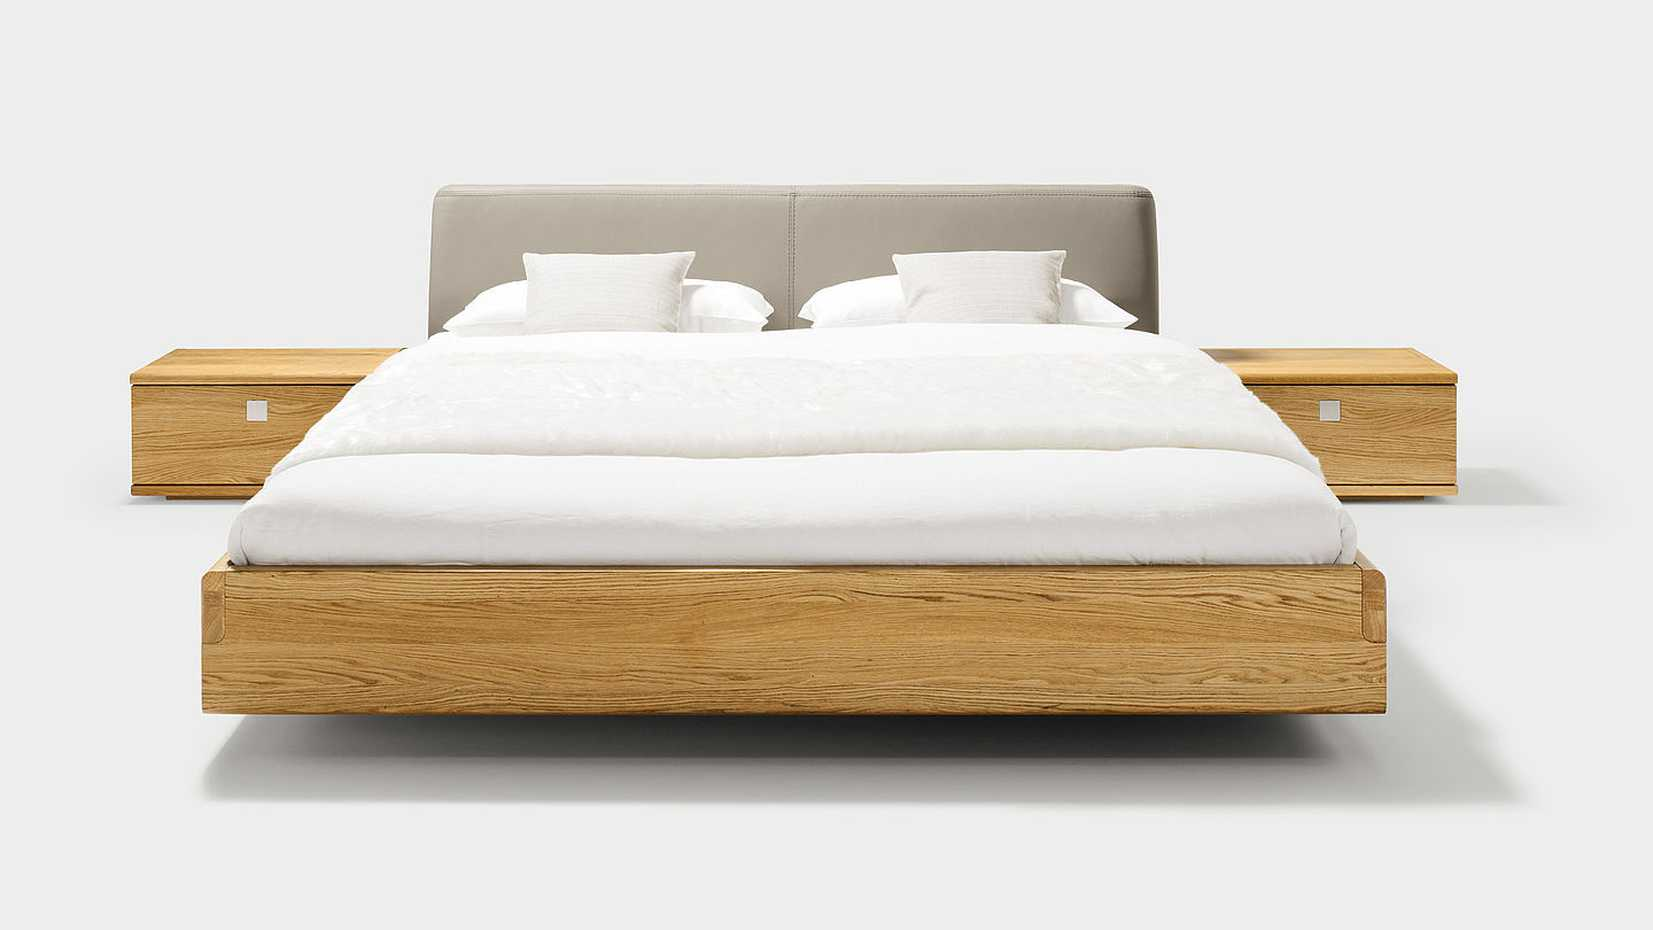 Nox Bed by Team 7 product image 2